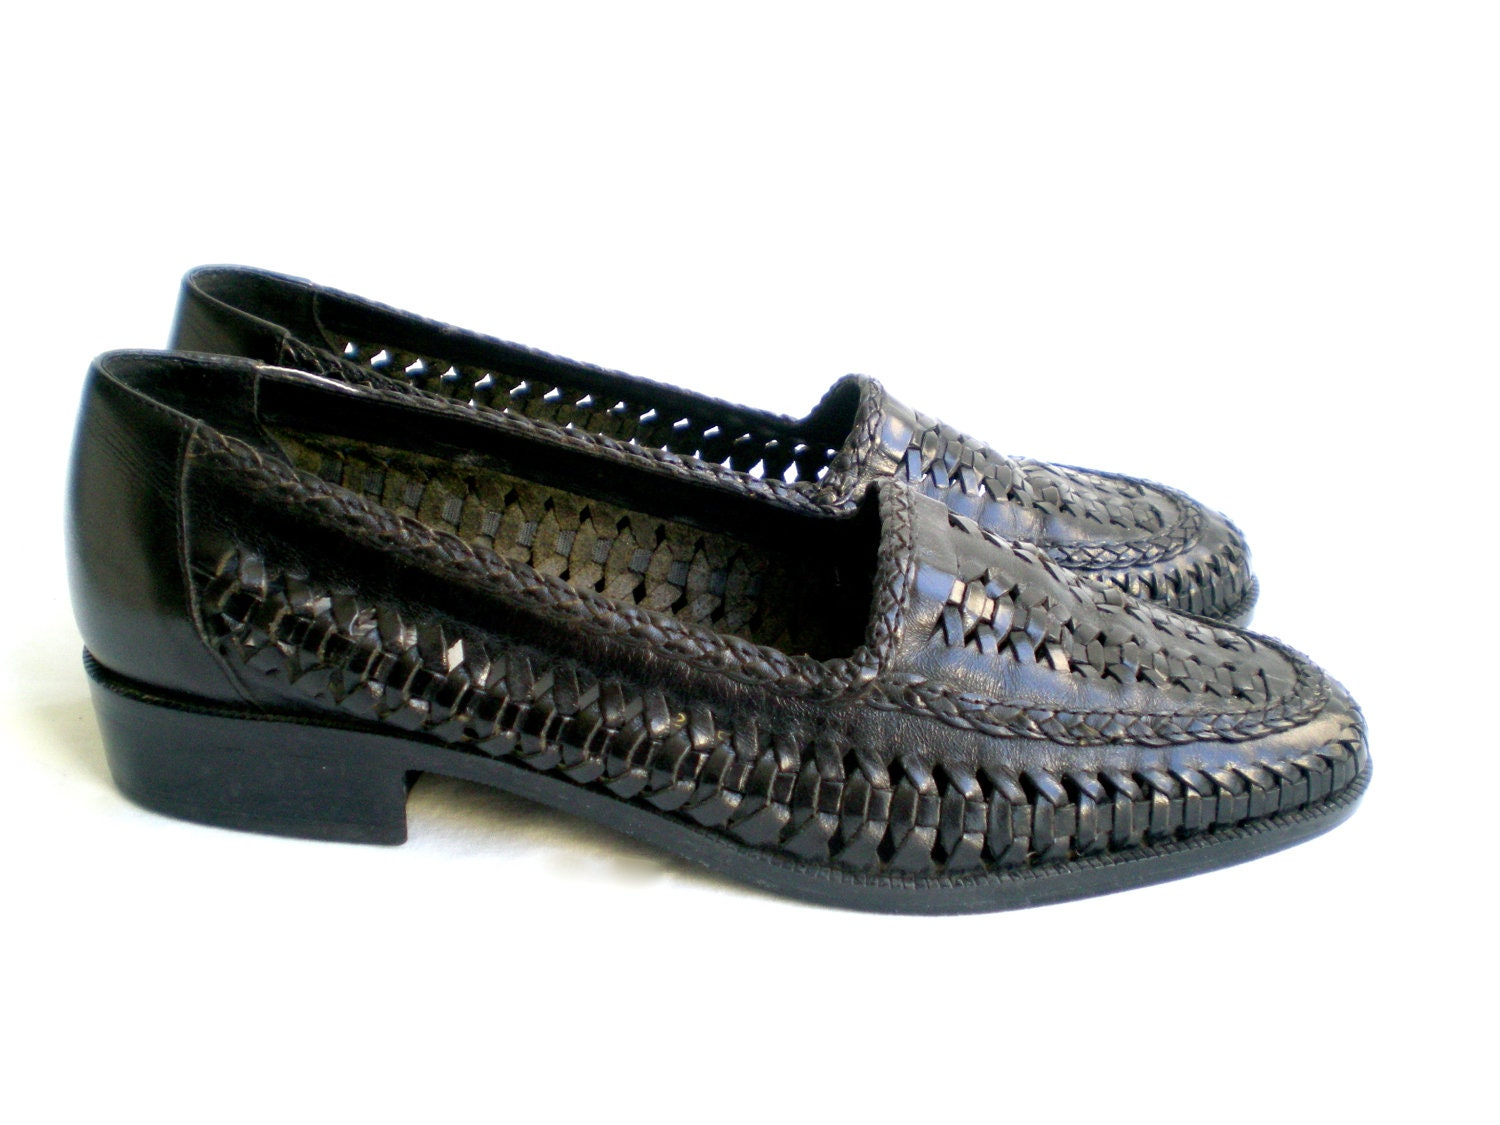 Vintage 80s Huarache Loafers Black Woven Leather Slip On